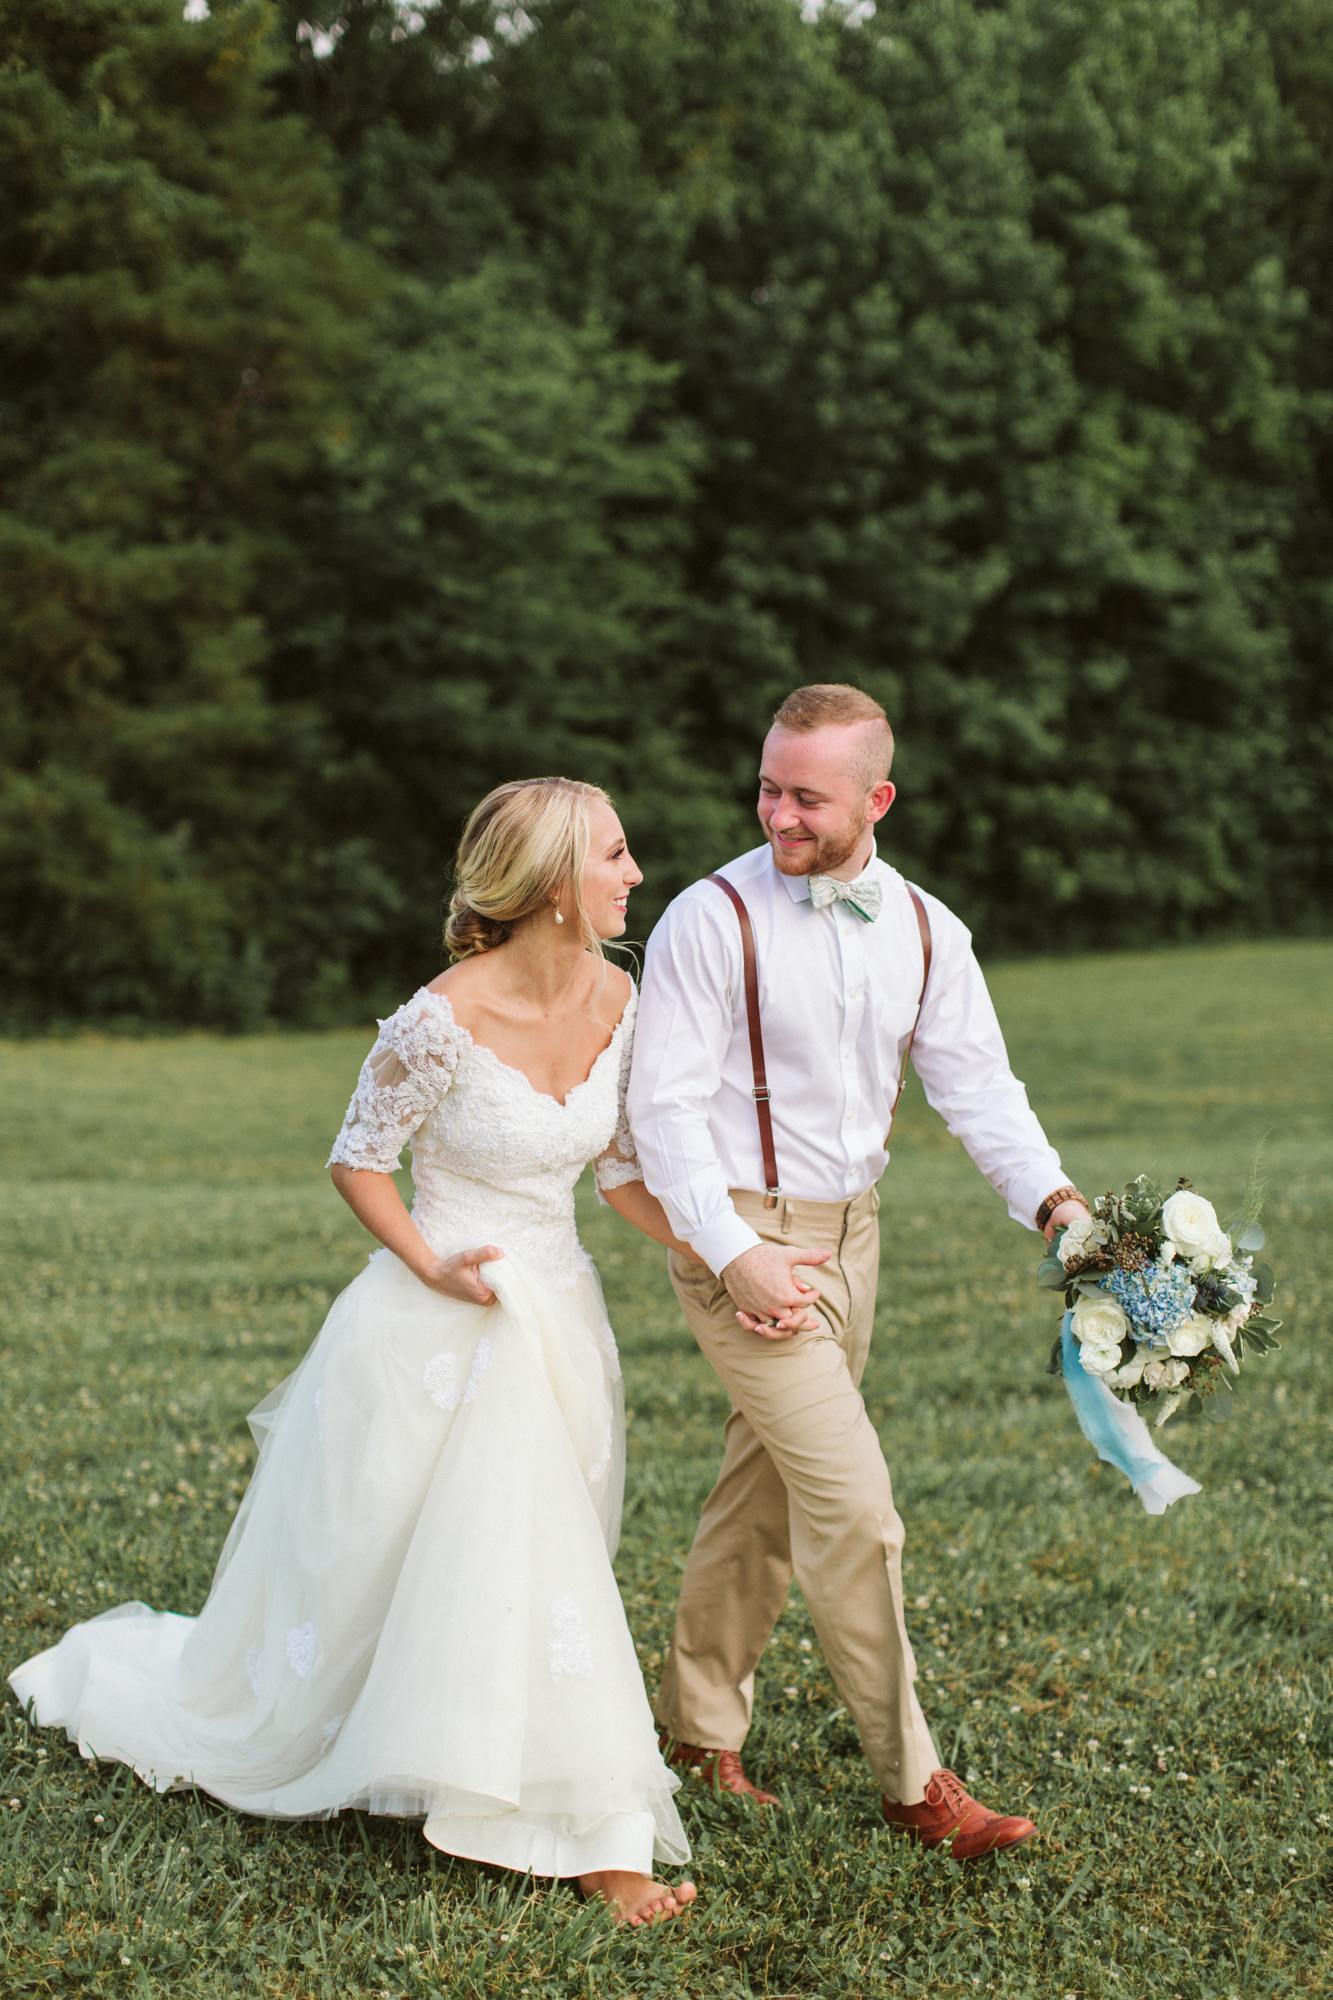 lauren+lucas rock hill south carolina wedding-7623.jpg